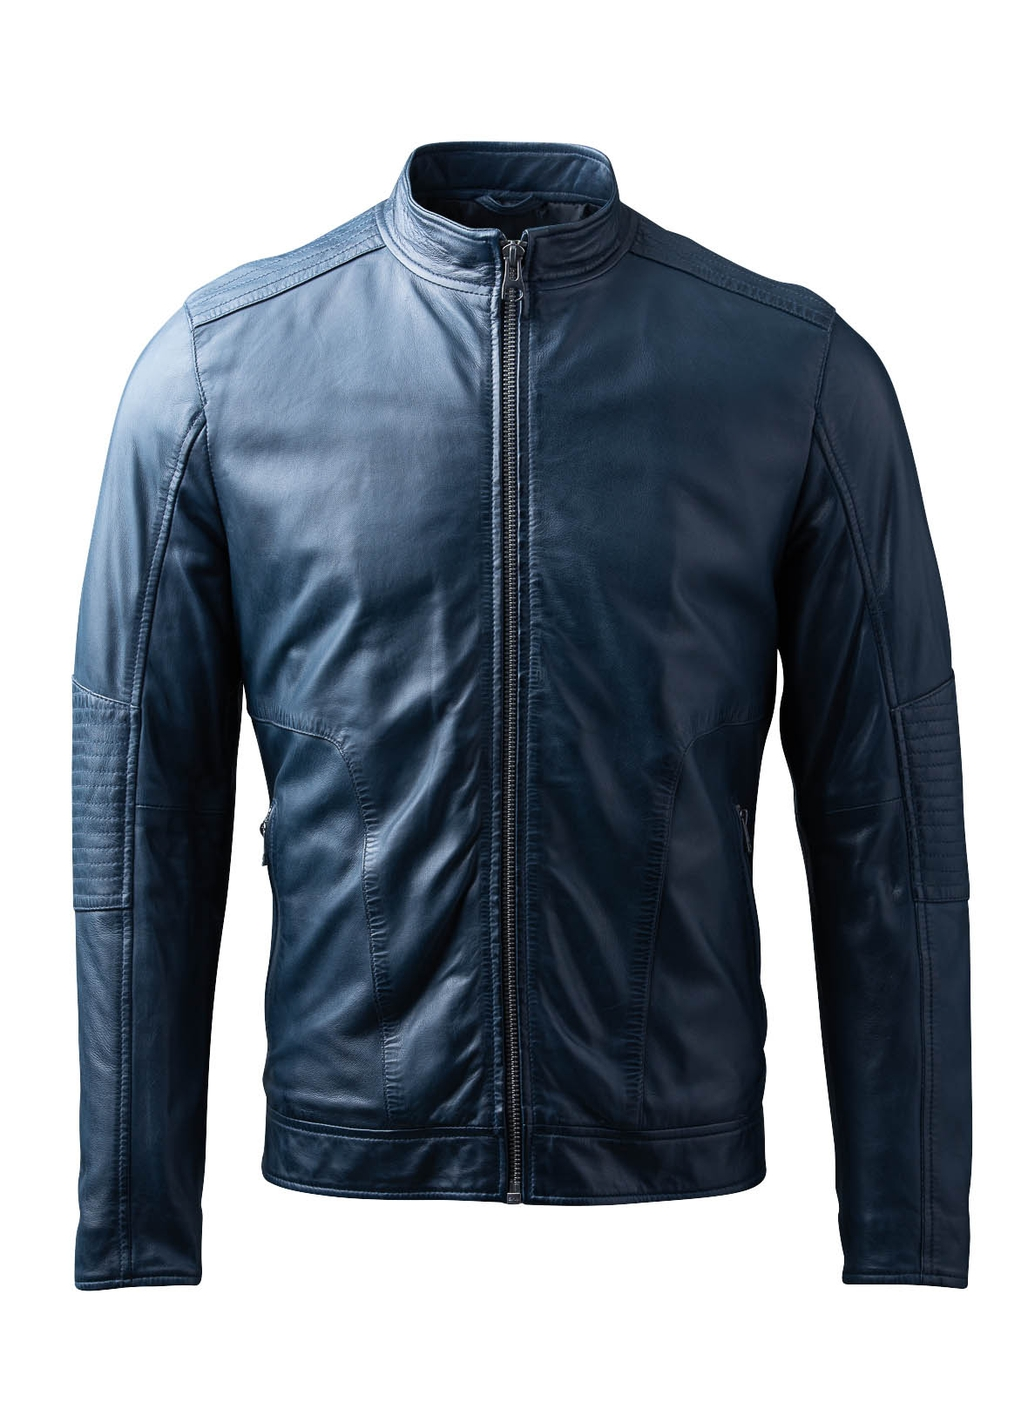 Greystoke Leather Jacket in Blue Night